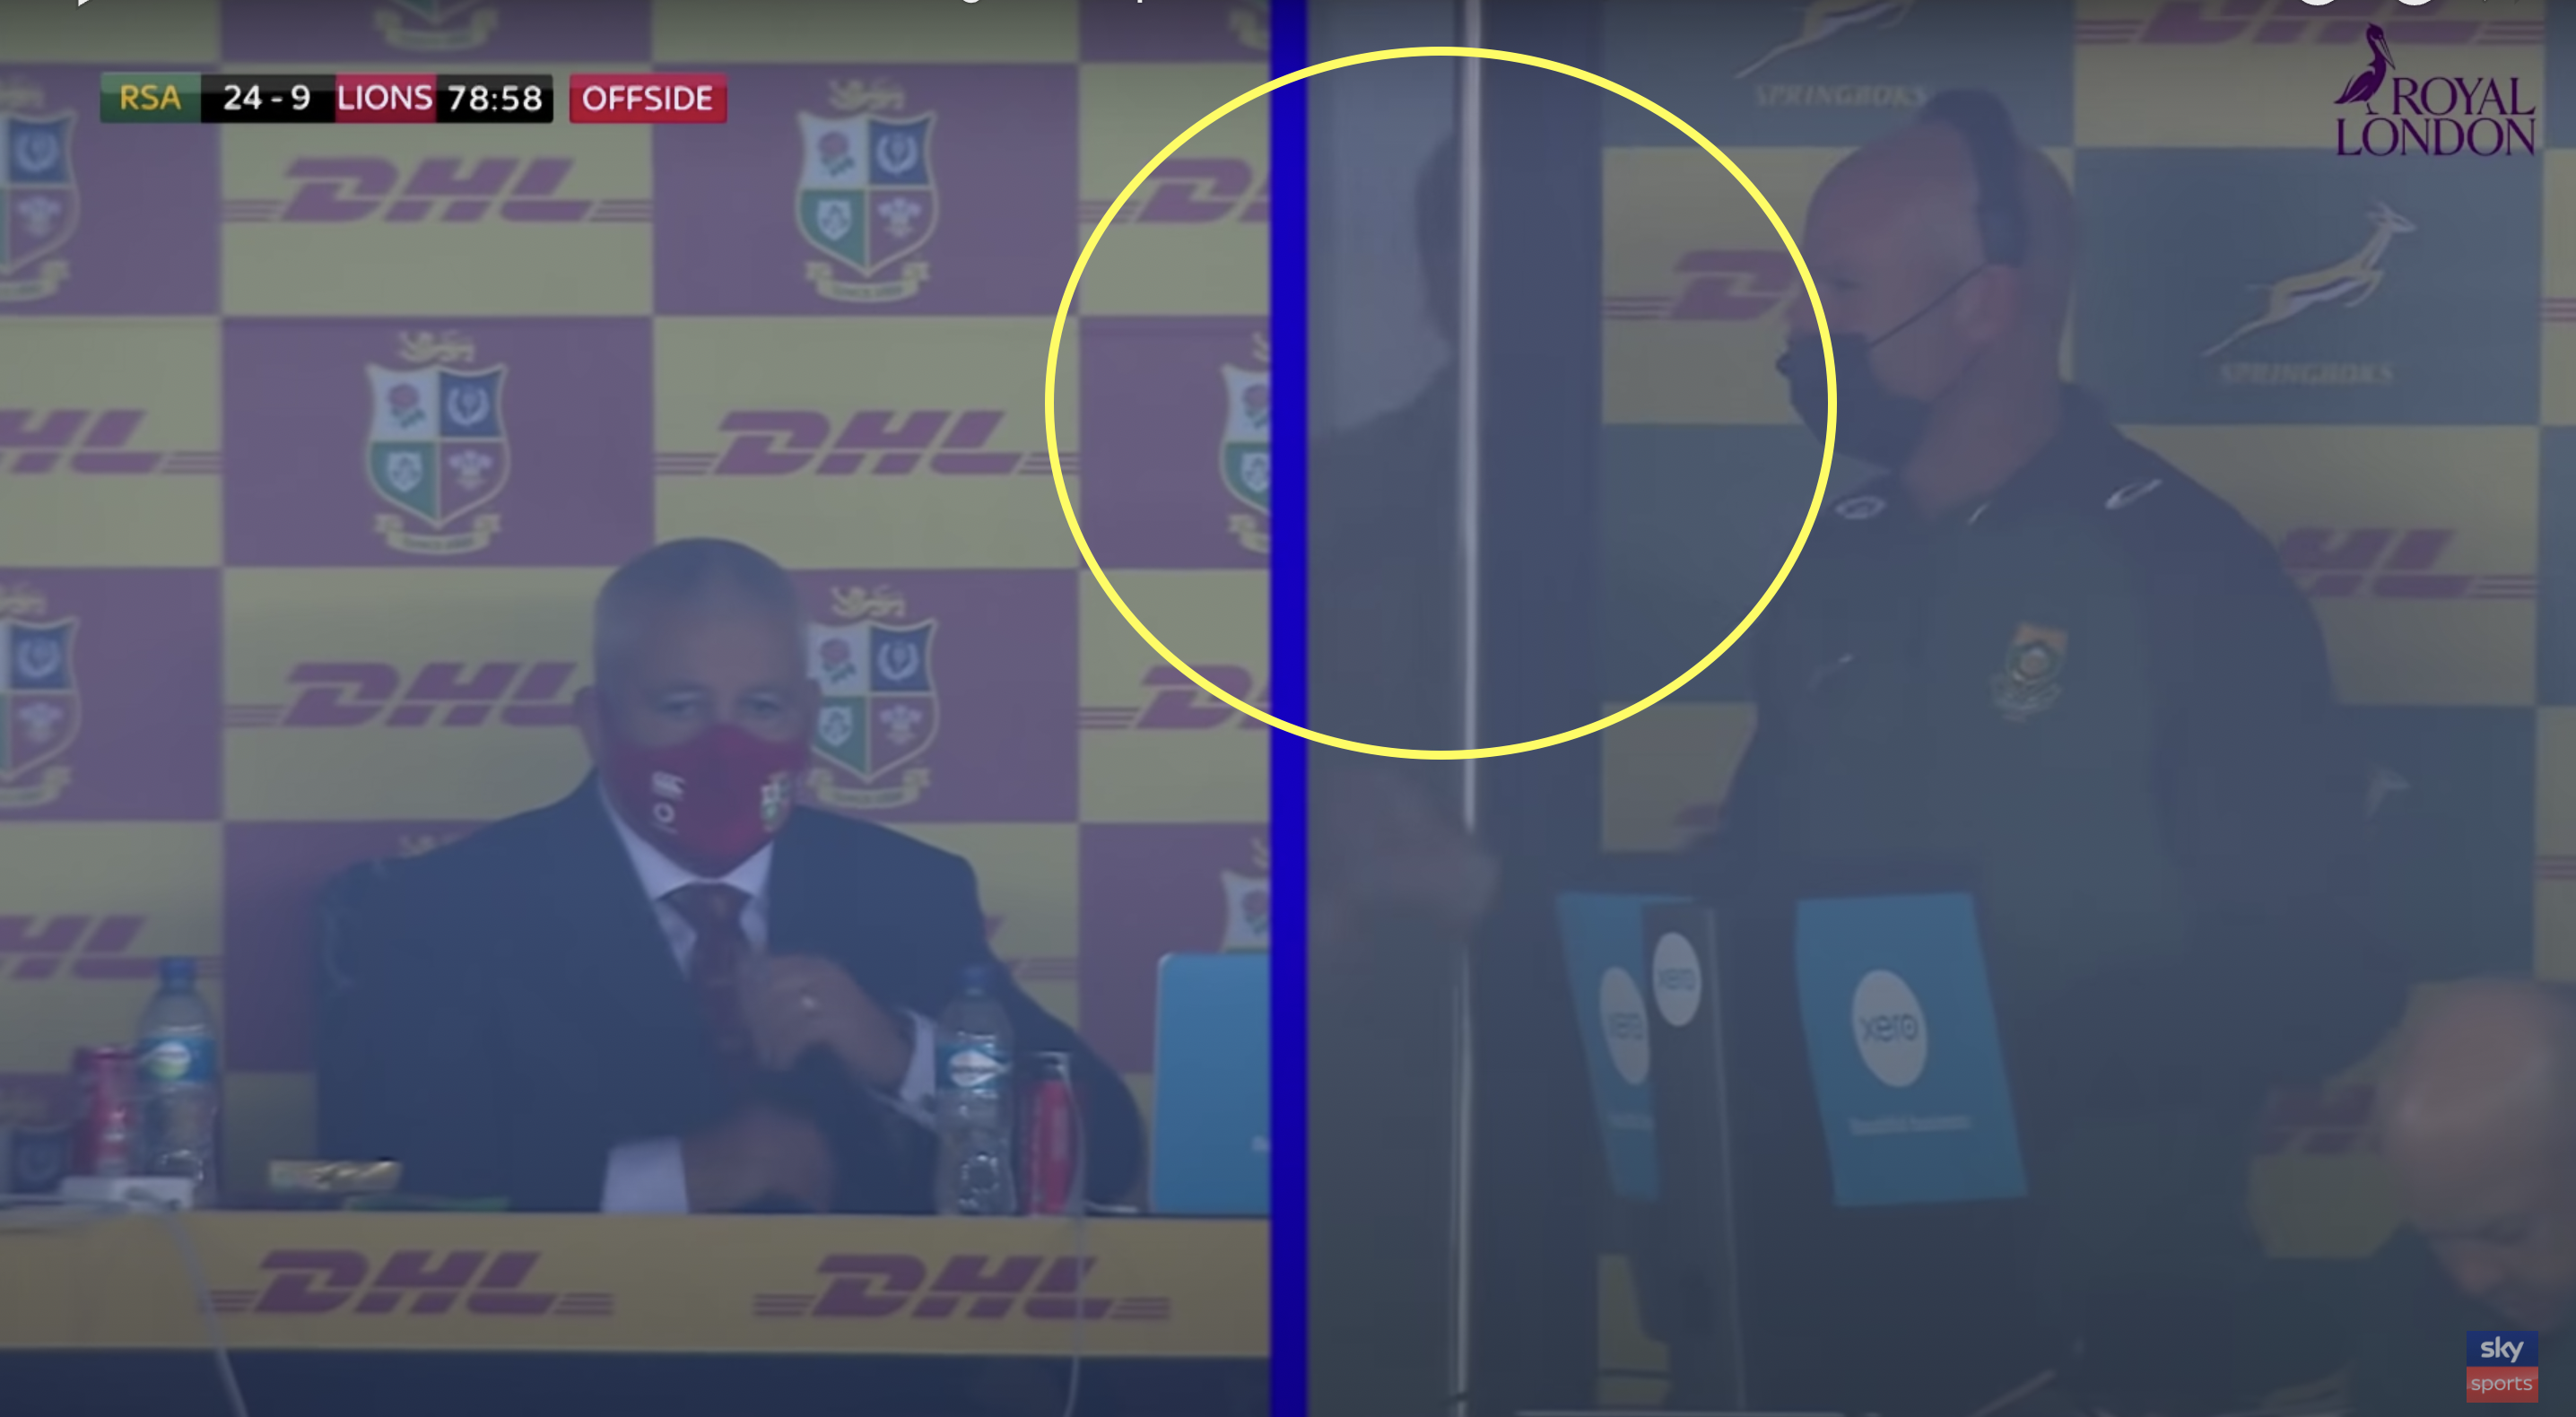 Jaco Johan spotted in South African box